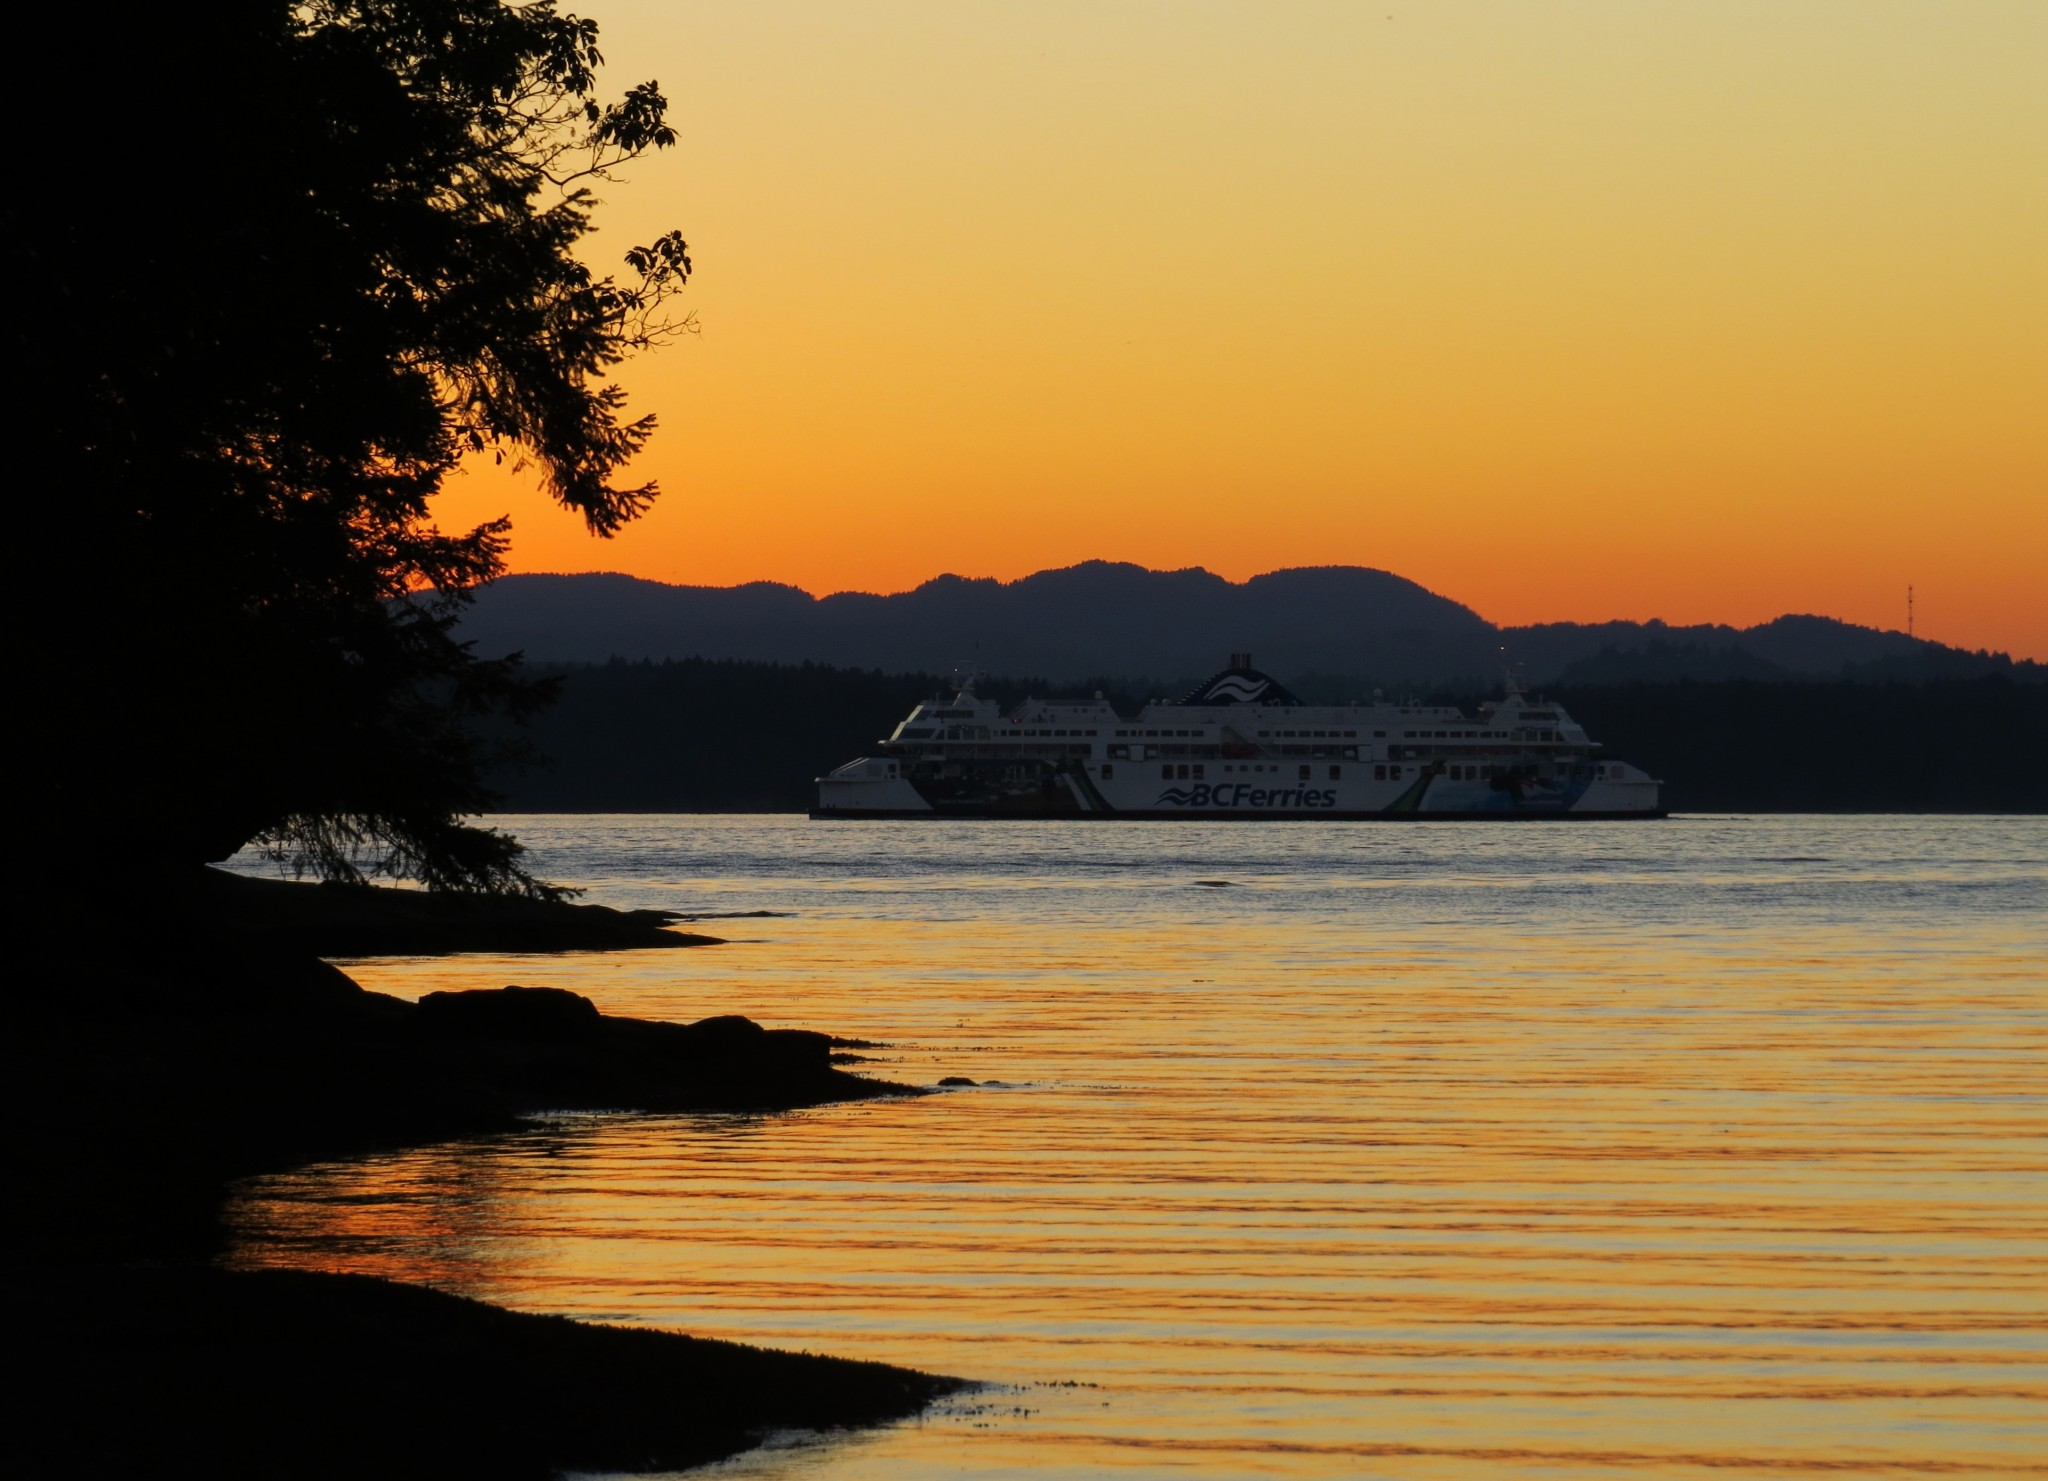 BC Ferry view from Gabriola Island, BC